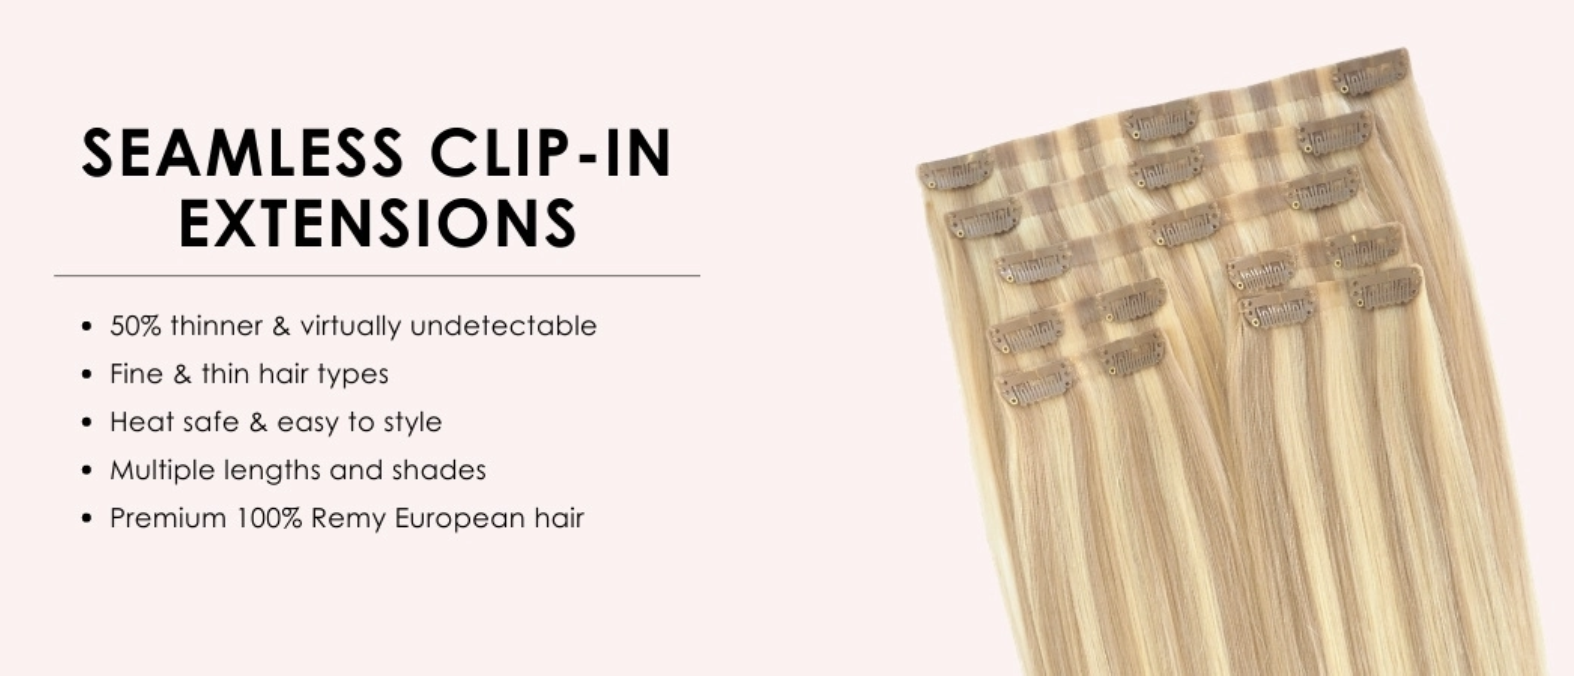 Cashmere Hair Seamless Clip-In Extensions